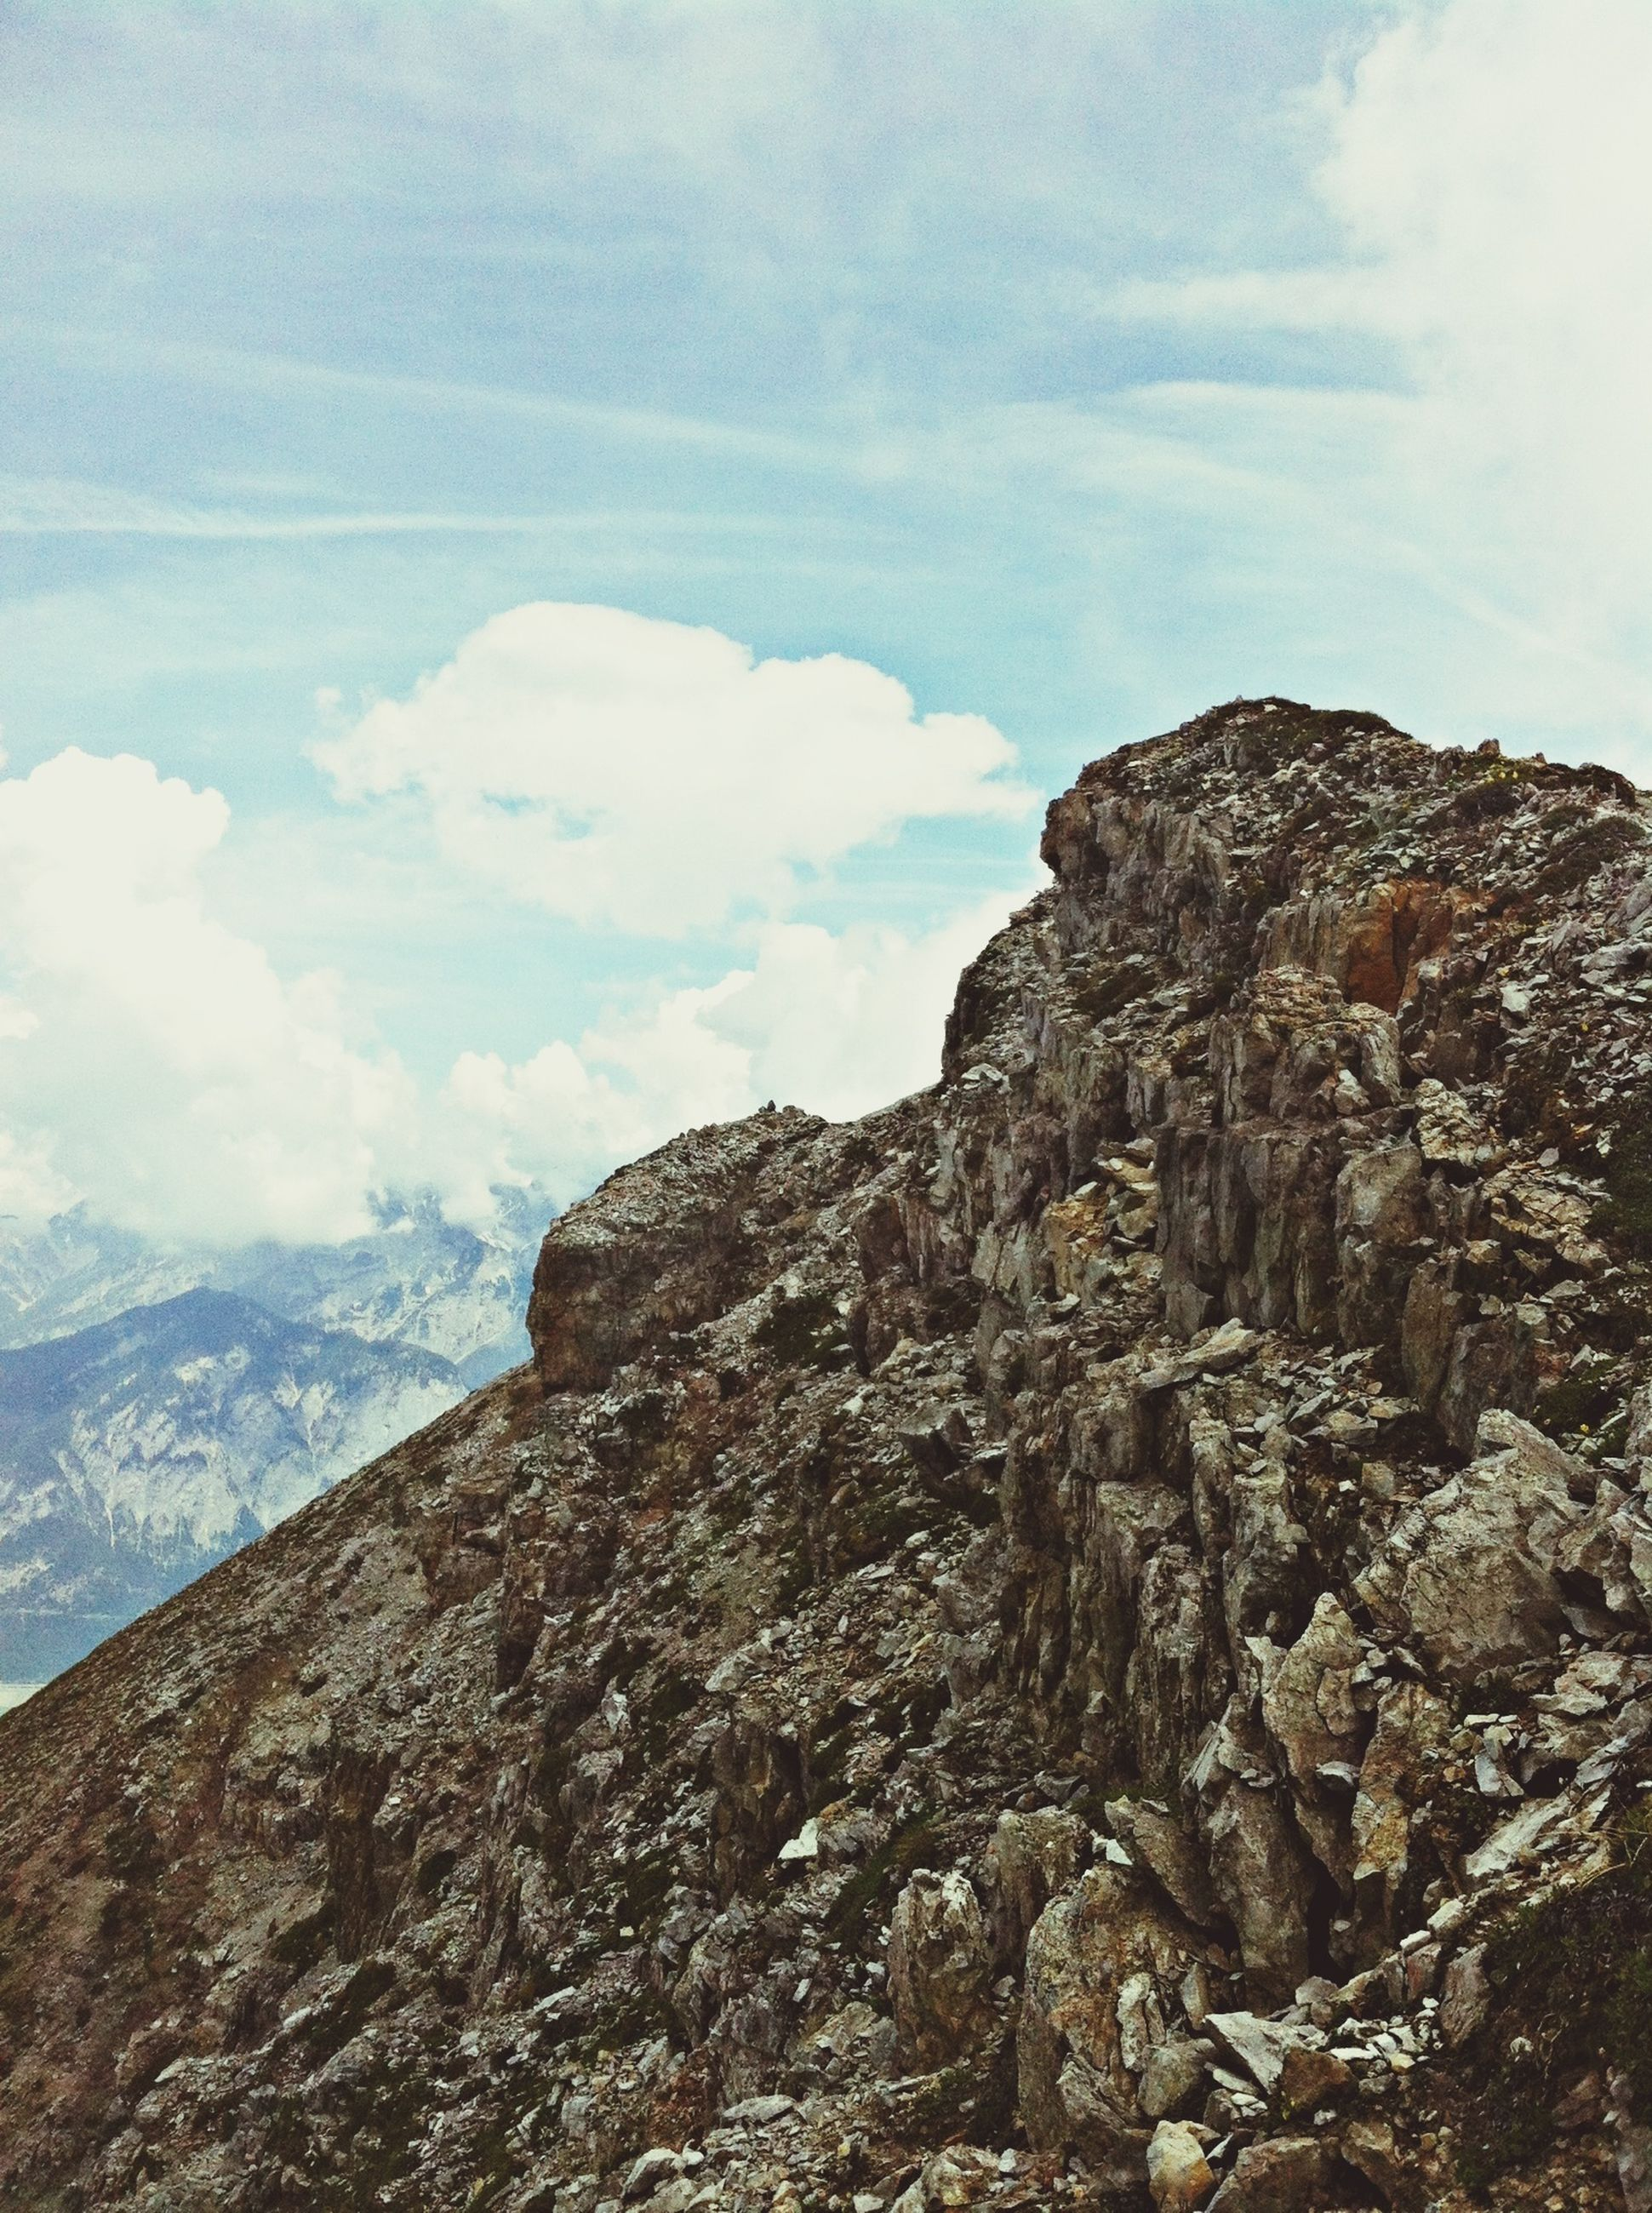 mountain, sky, low angle view, tranquility, rock formation, cloud - sky, tranquil scene, scenics, rocky mountains, rock - object, nature, beauty in nature, mountain range, cloud, geology, physical geography, landscape, day, non-urban scene, outdoors